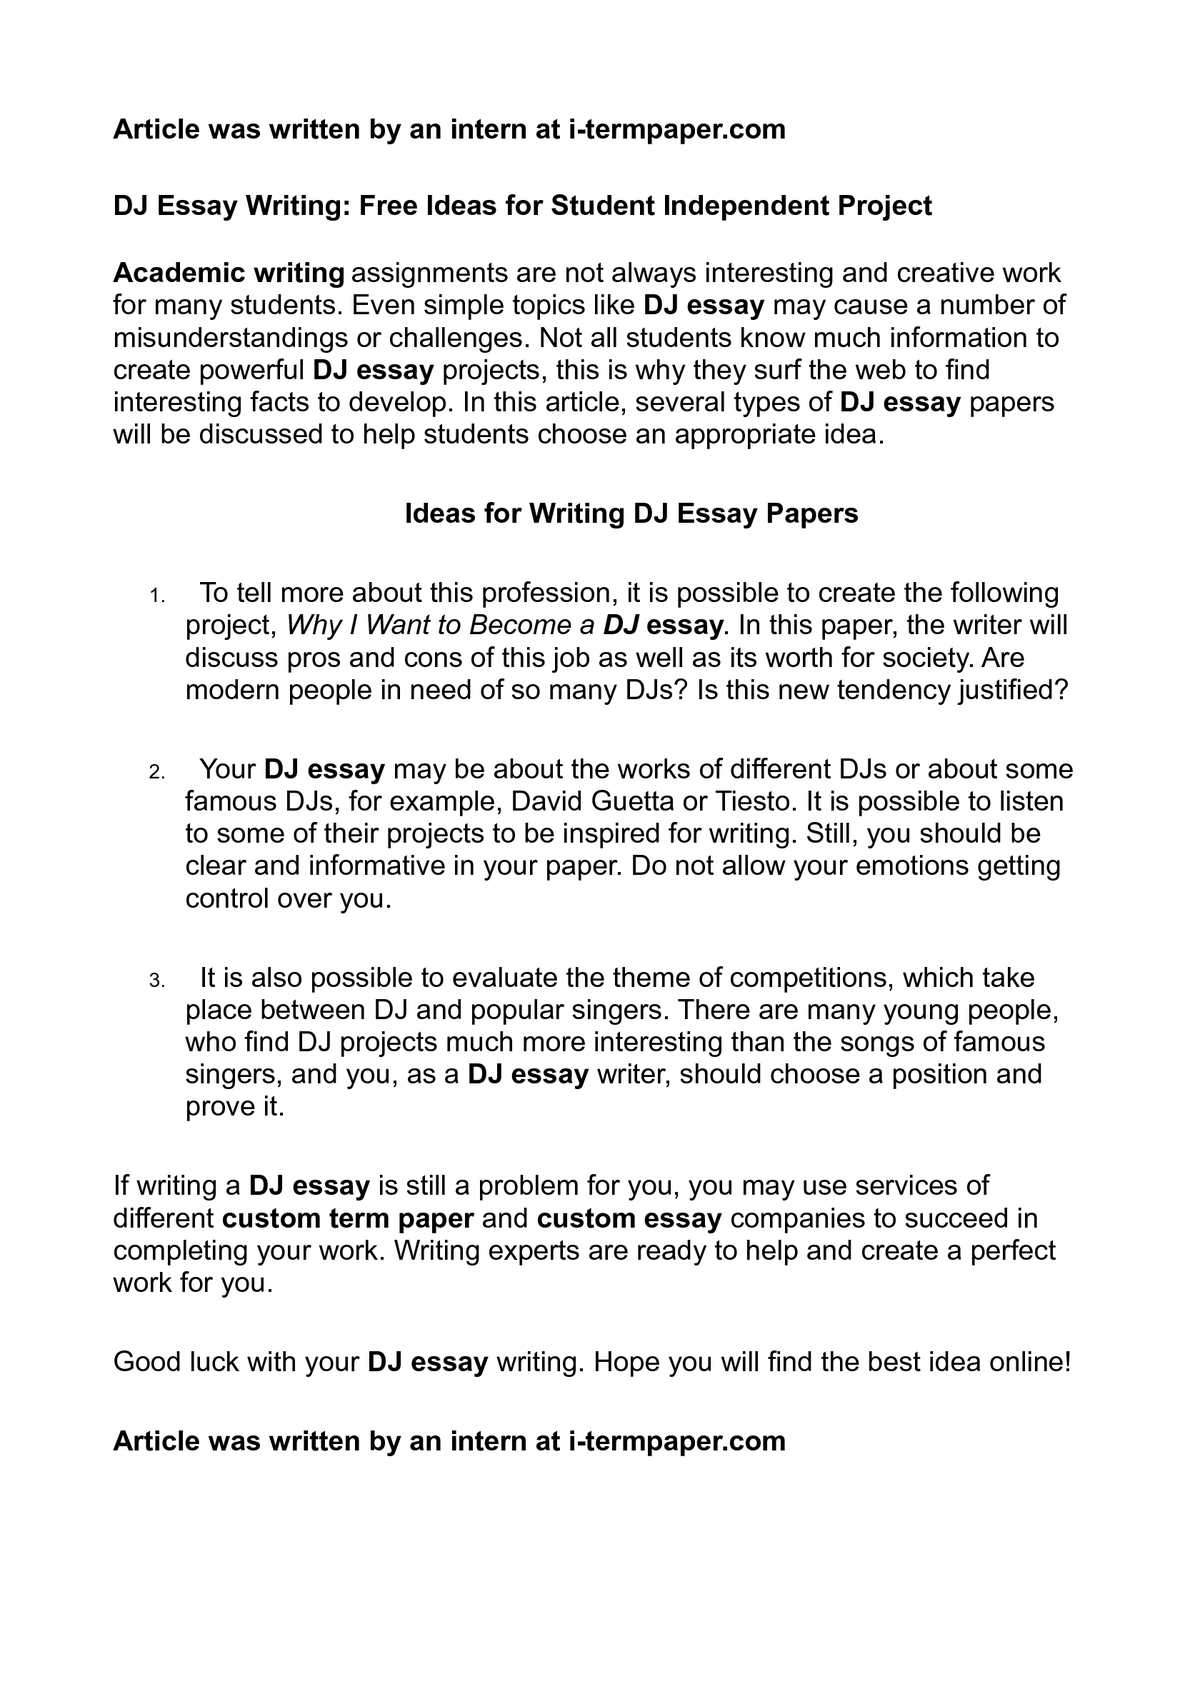 calamo  dj essay writing free ideas for student independent project